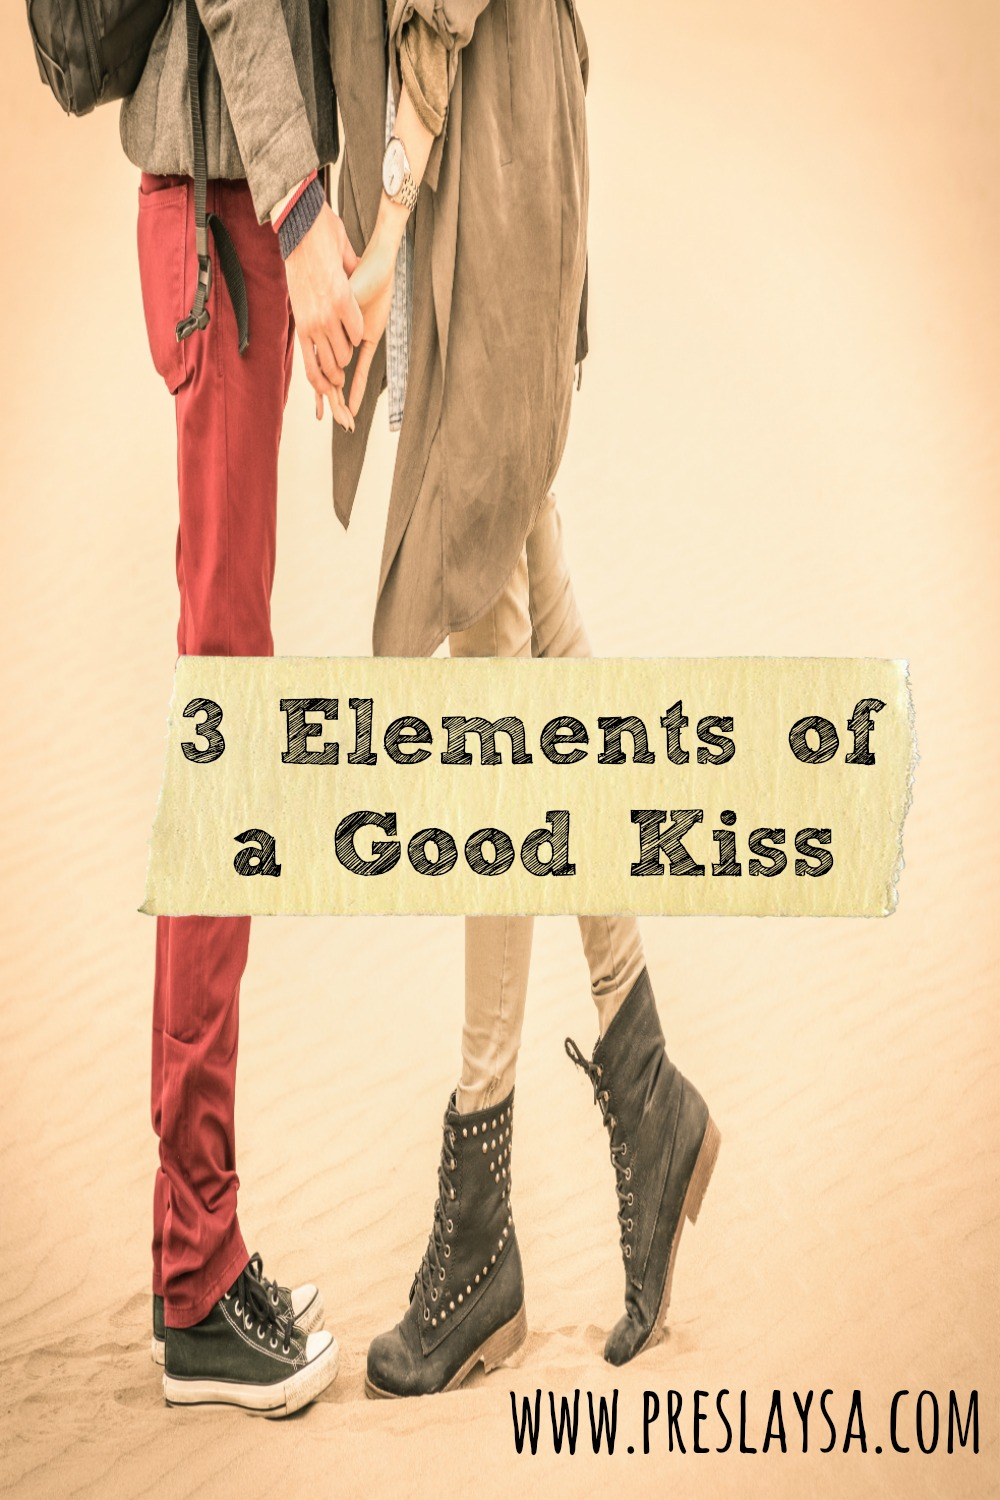 Elements of a Good Kiss